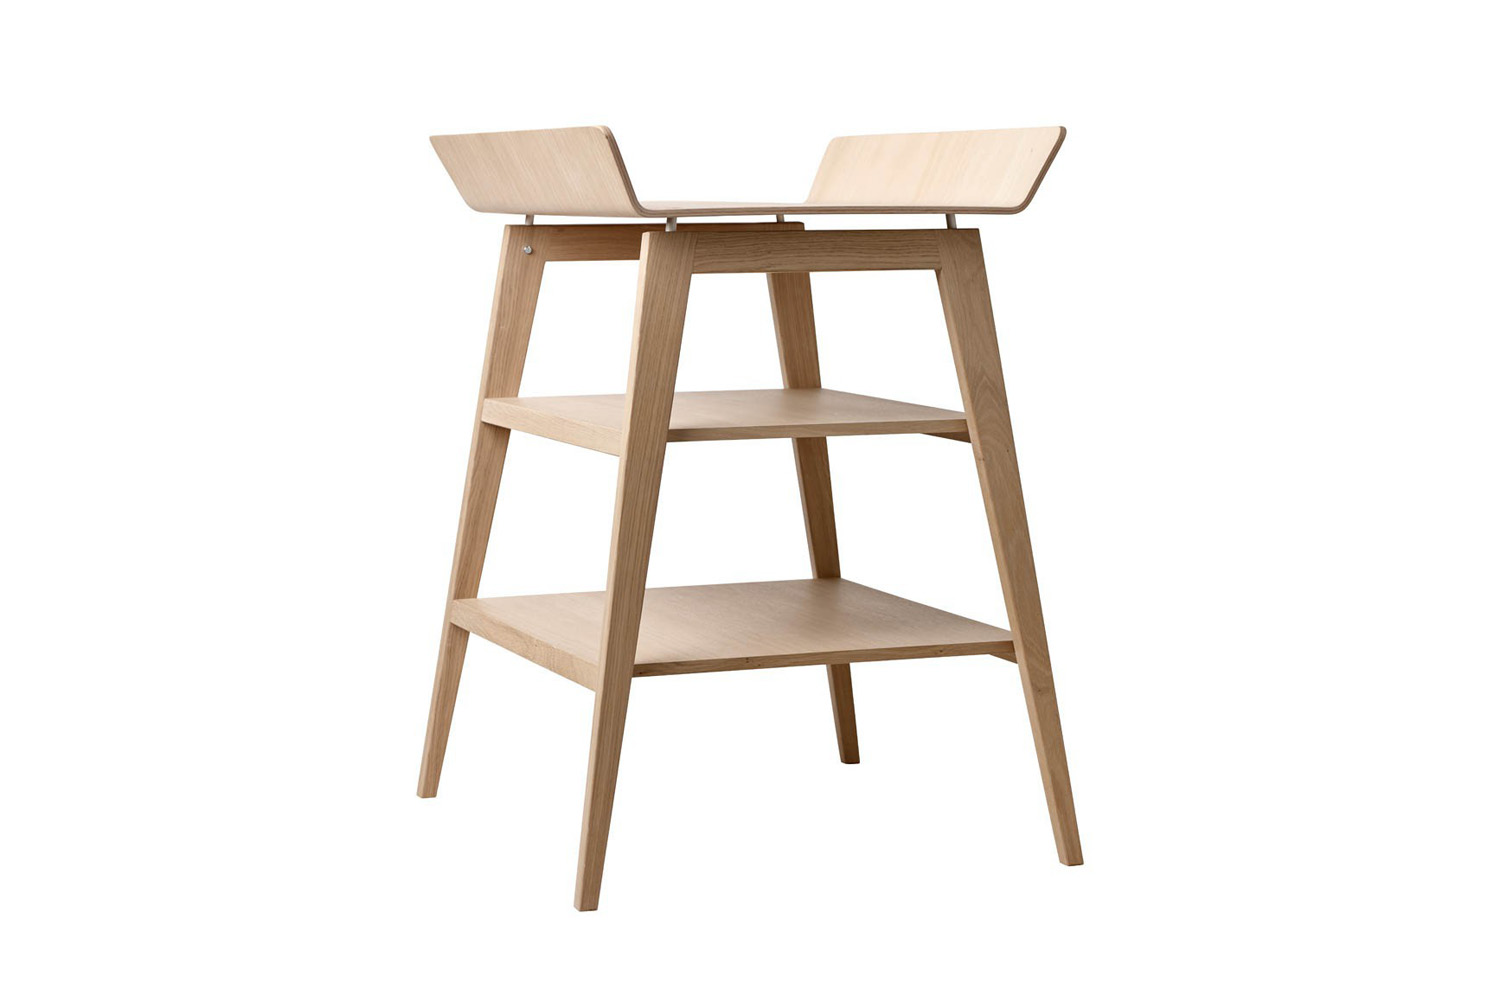 the leander linéa changing table in oak is \$483 at smallable. 13